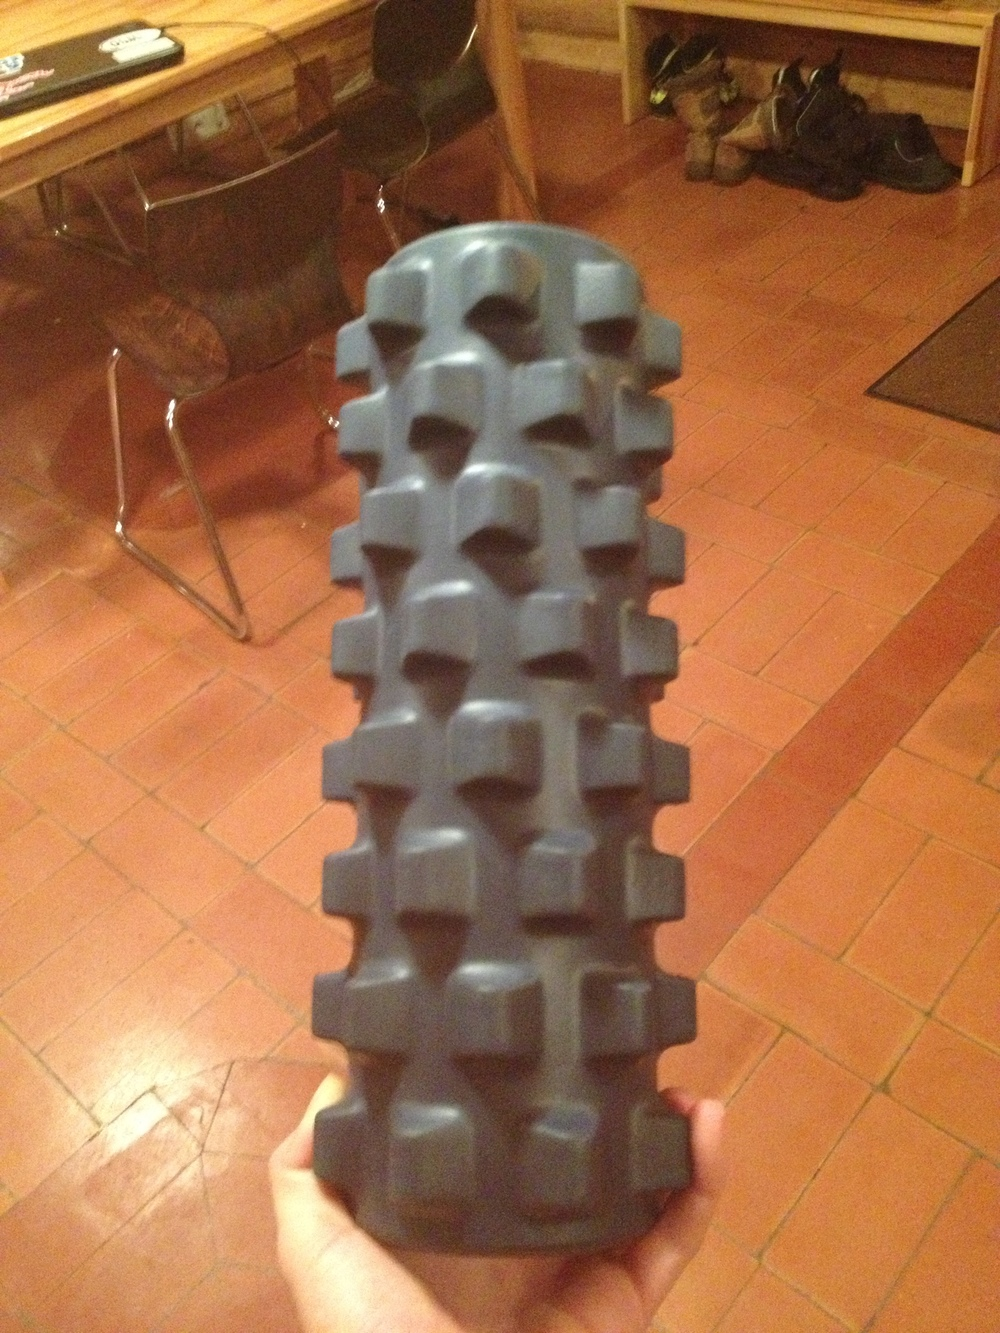 Jennie's torture-rolling device. I suppose those knobby bits are good for your muscles, but...